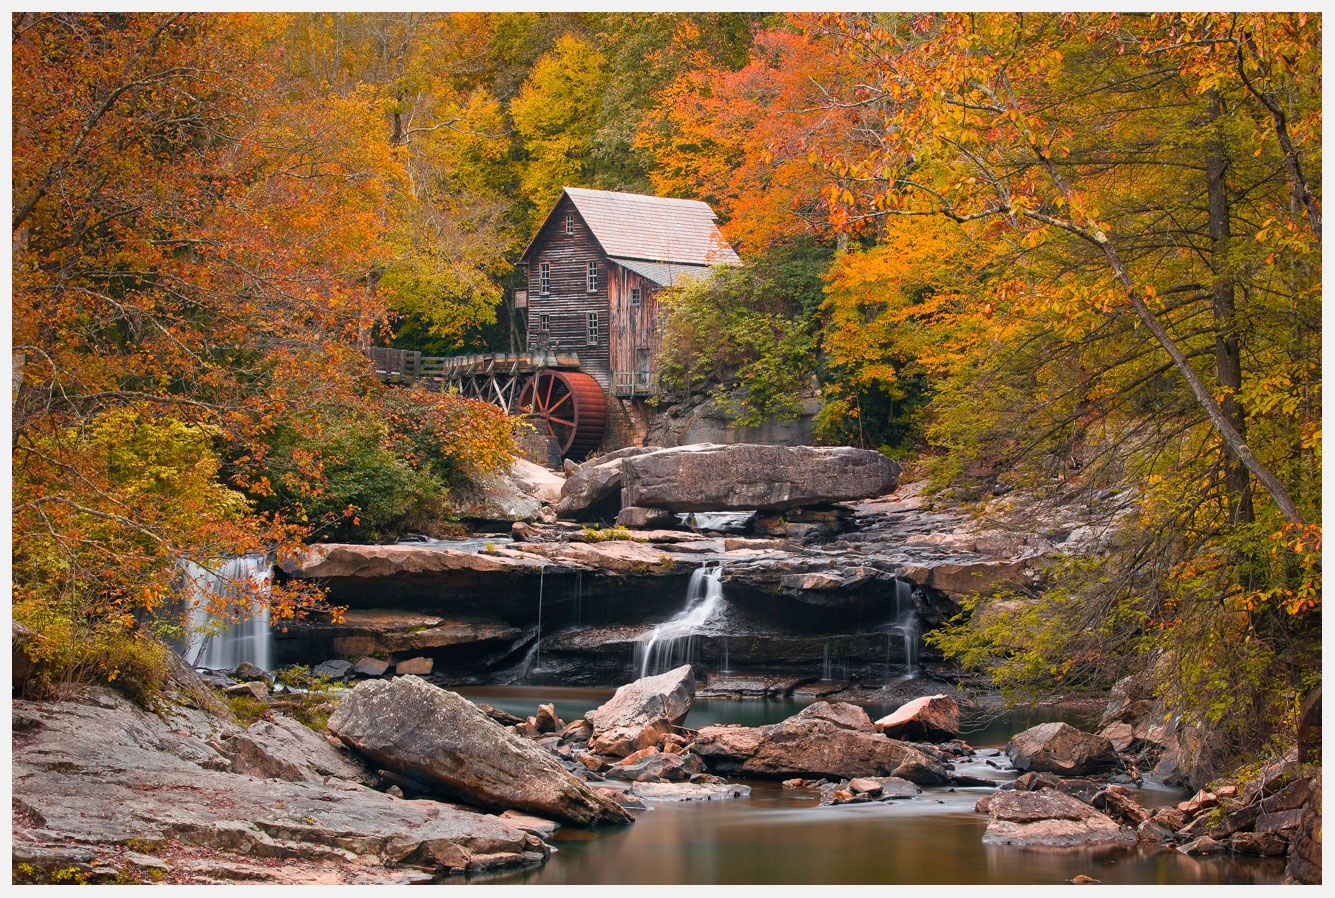 Autumn Leaves Next To A Stream With Water Flowing Over Rocks And A Mill In The Background,